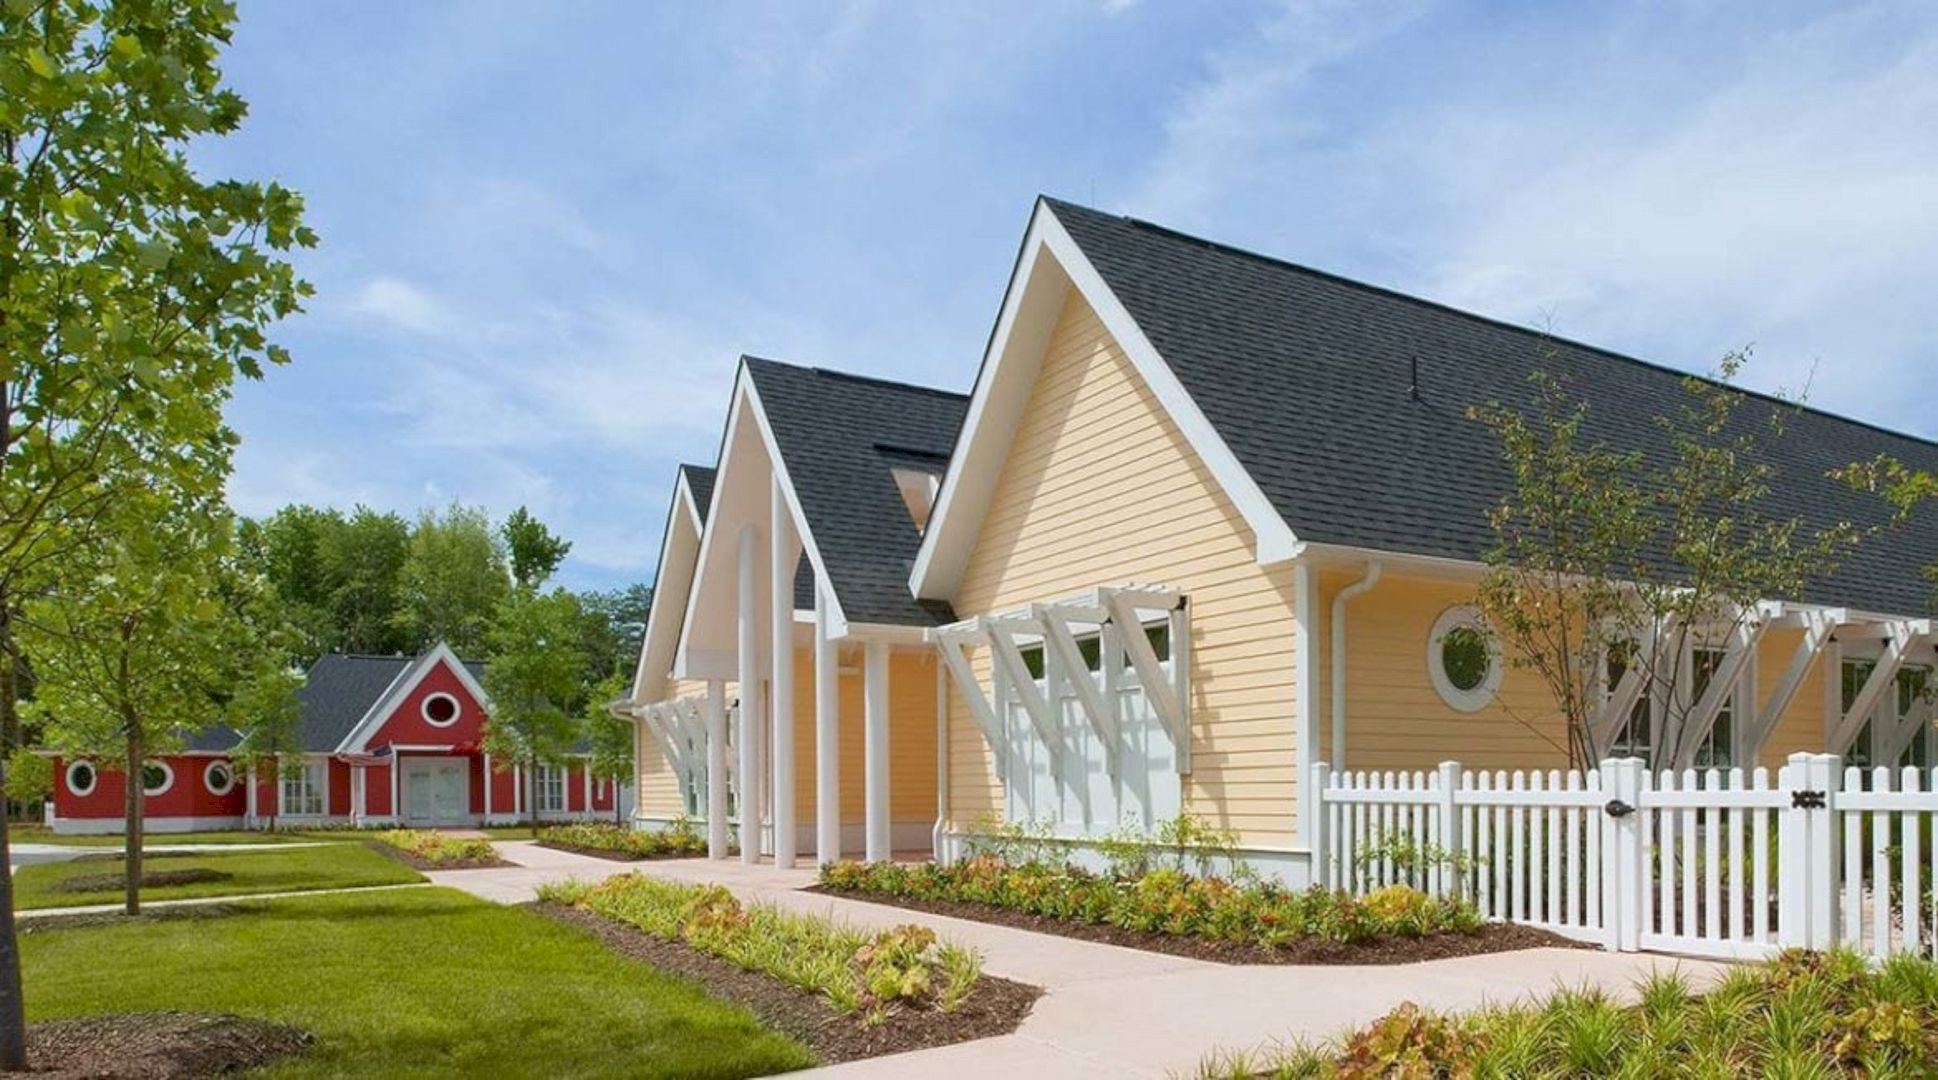 Wounded Warrior Home By Michael Graves Architecture & Design 8